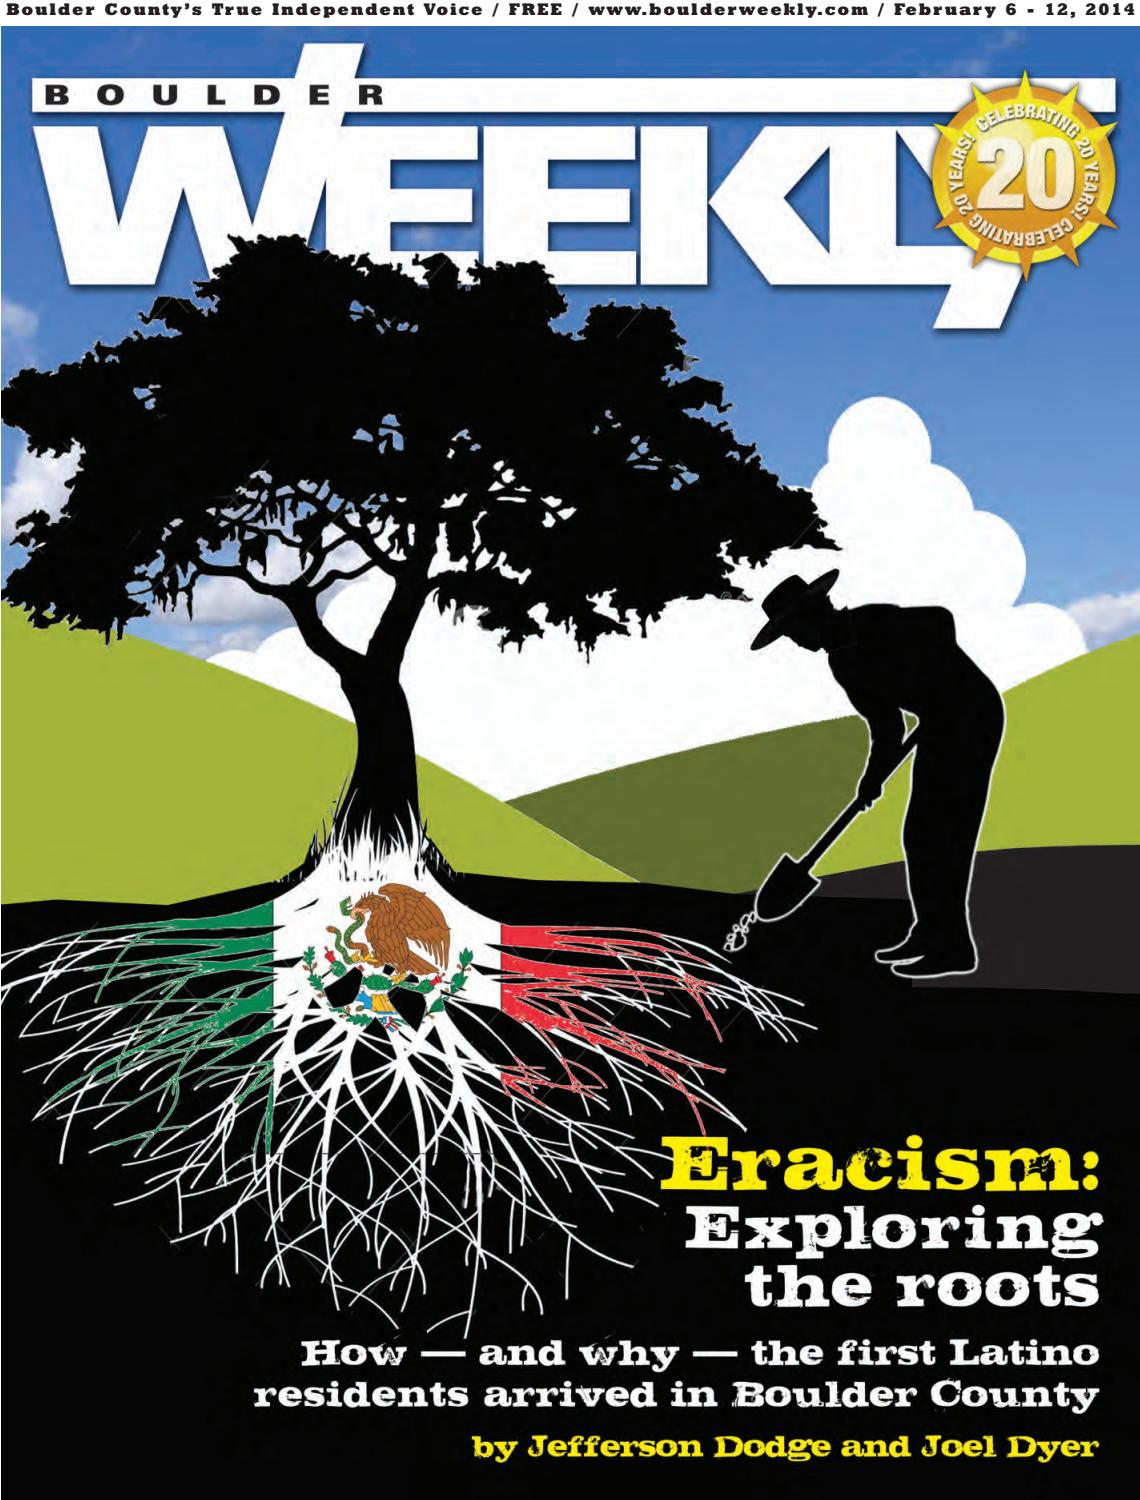 2 6 14 boulder weekly by Boulder Weekly issuu